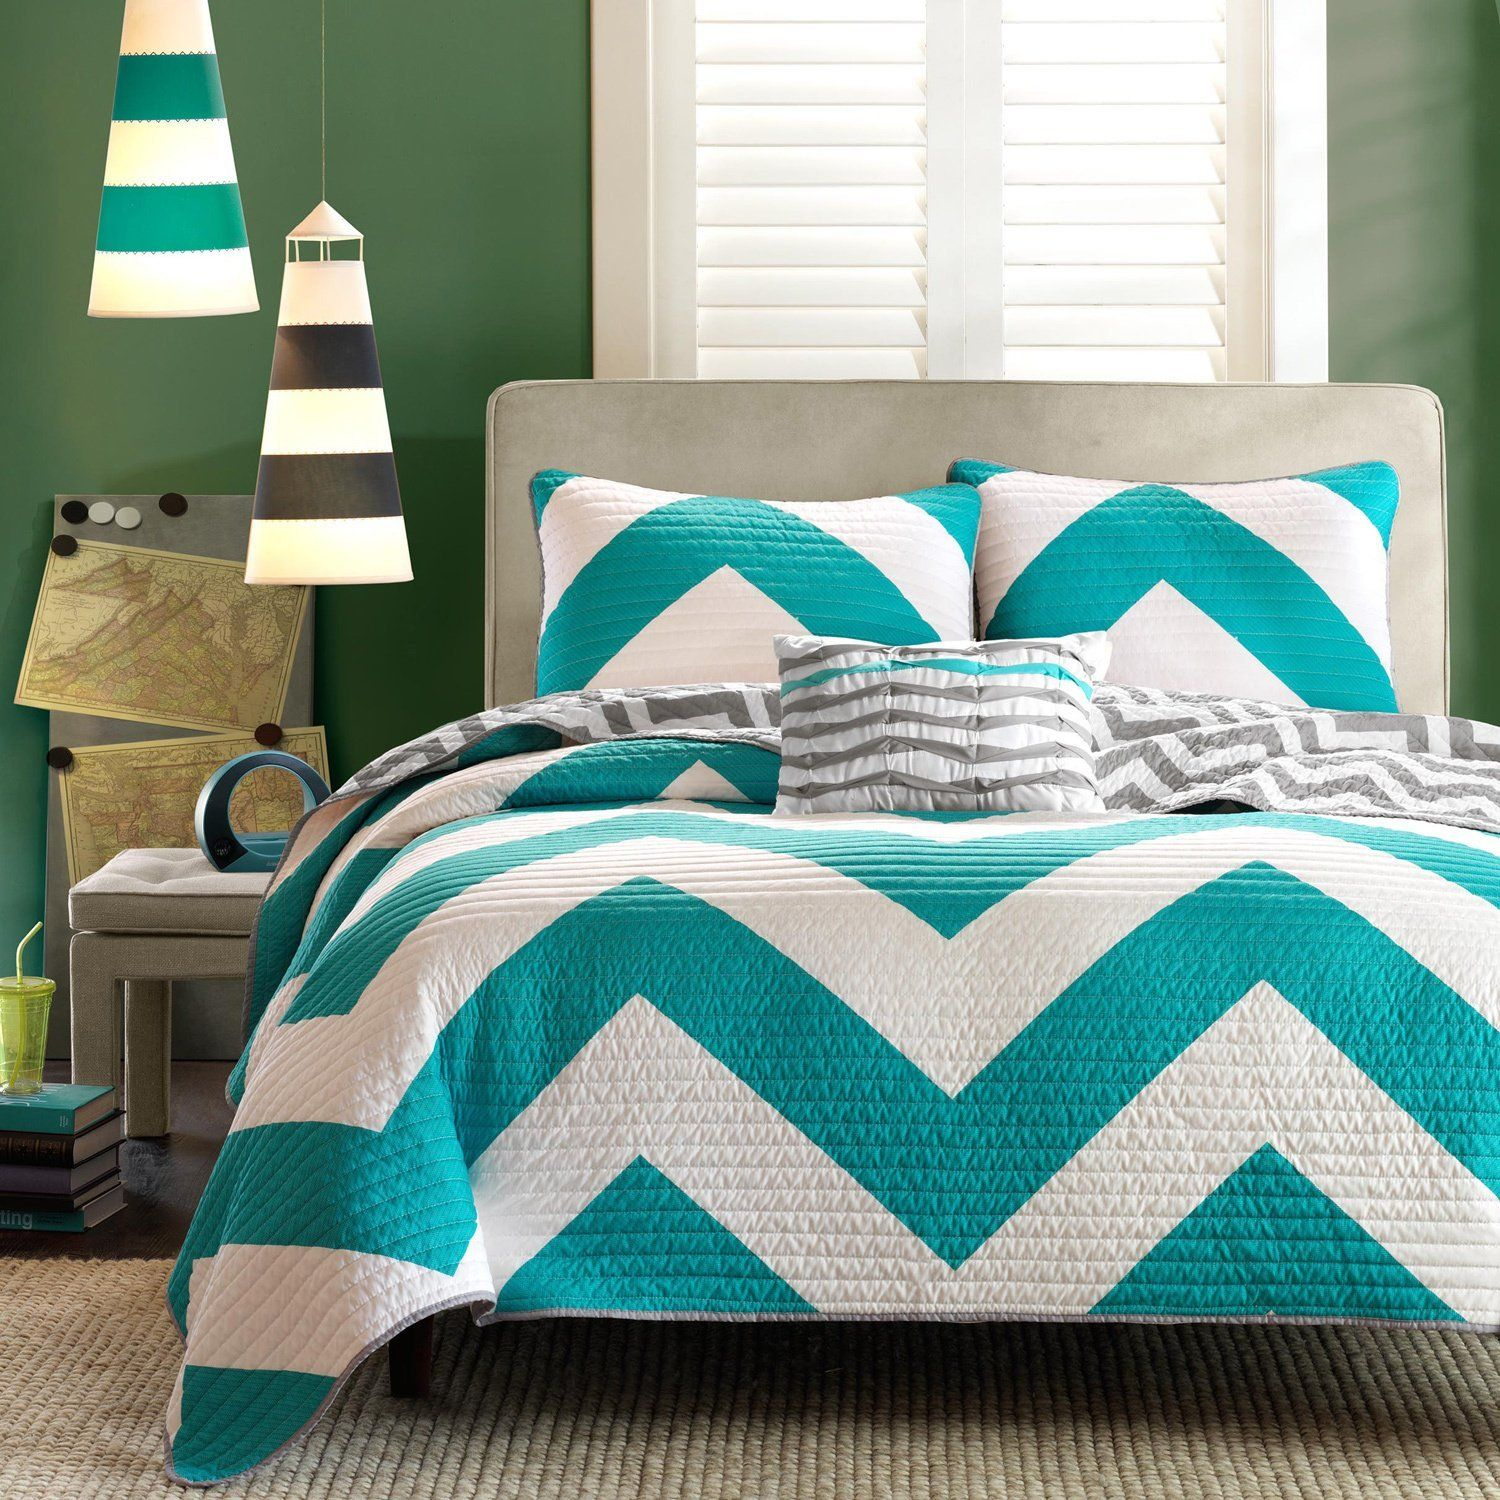 Amazon: 4 Pc Zig Zag Reversible Chevron Bedspread Quilt With Matching  Shams And